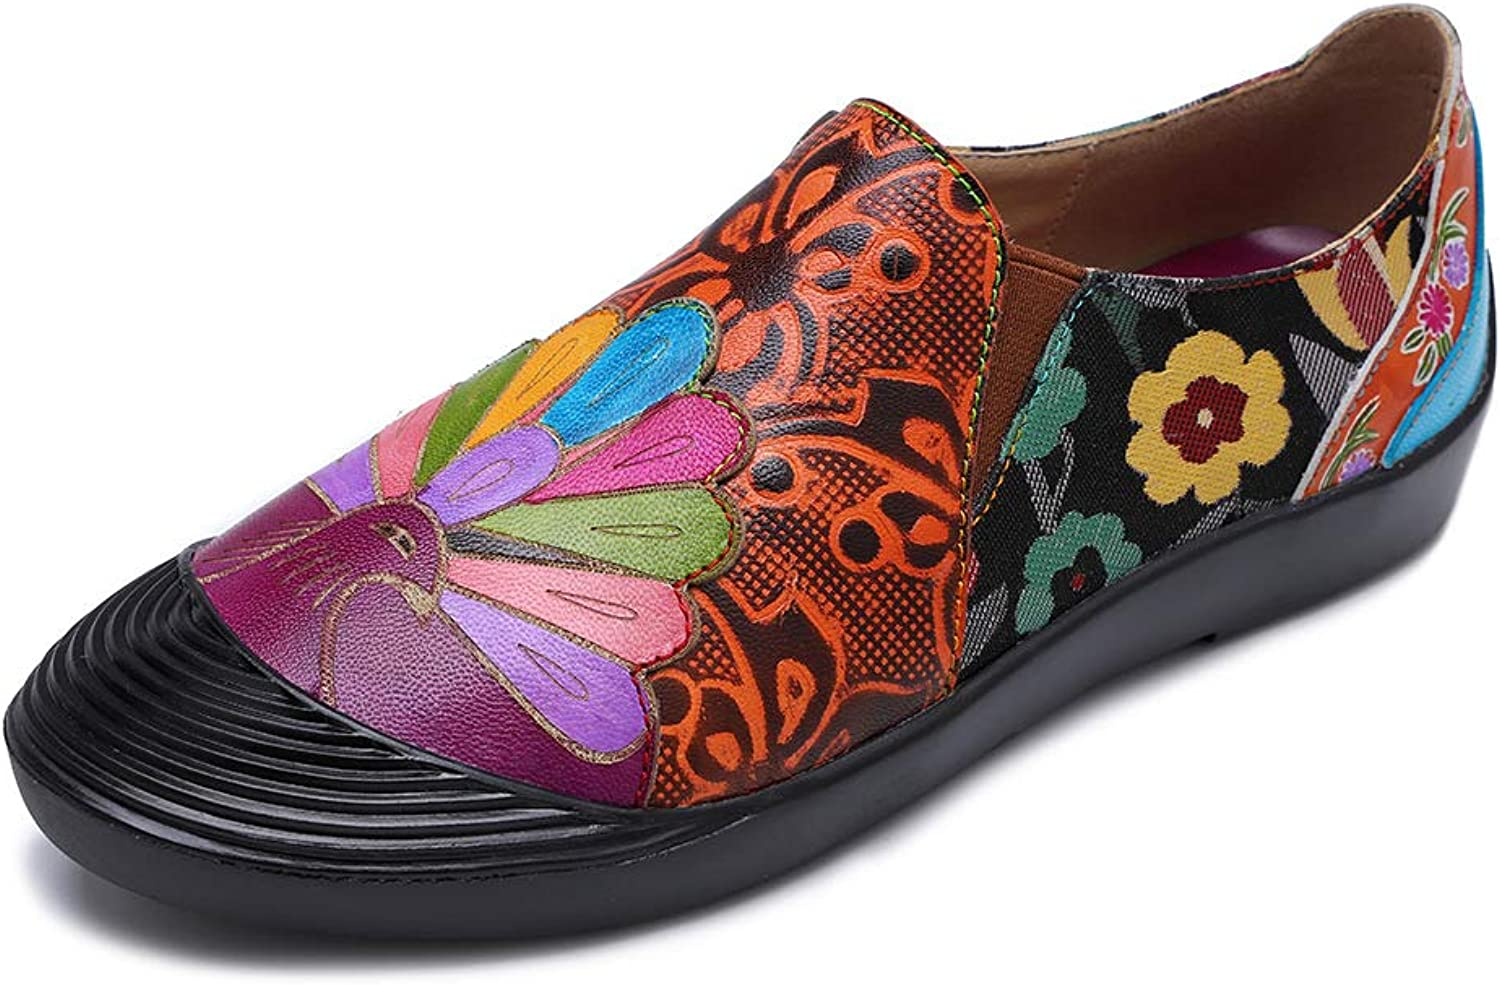 CrazycatZ Womens Leather Mary Jane Flat shoes Leather Loafer Bohemian Pattern shoes